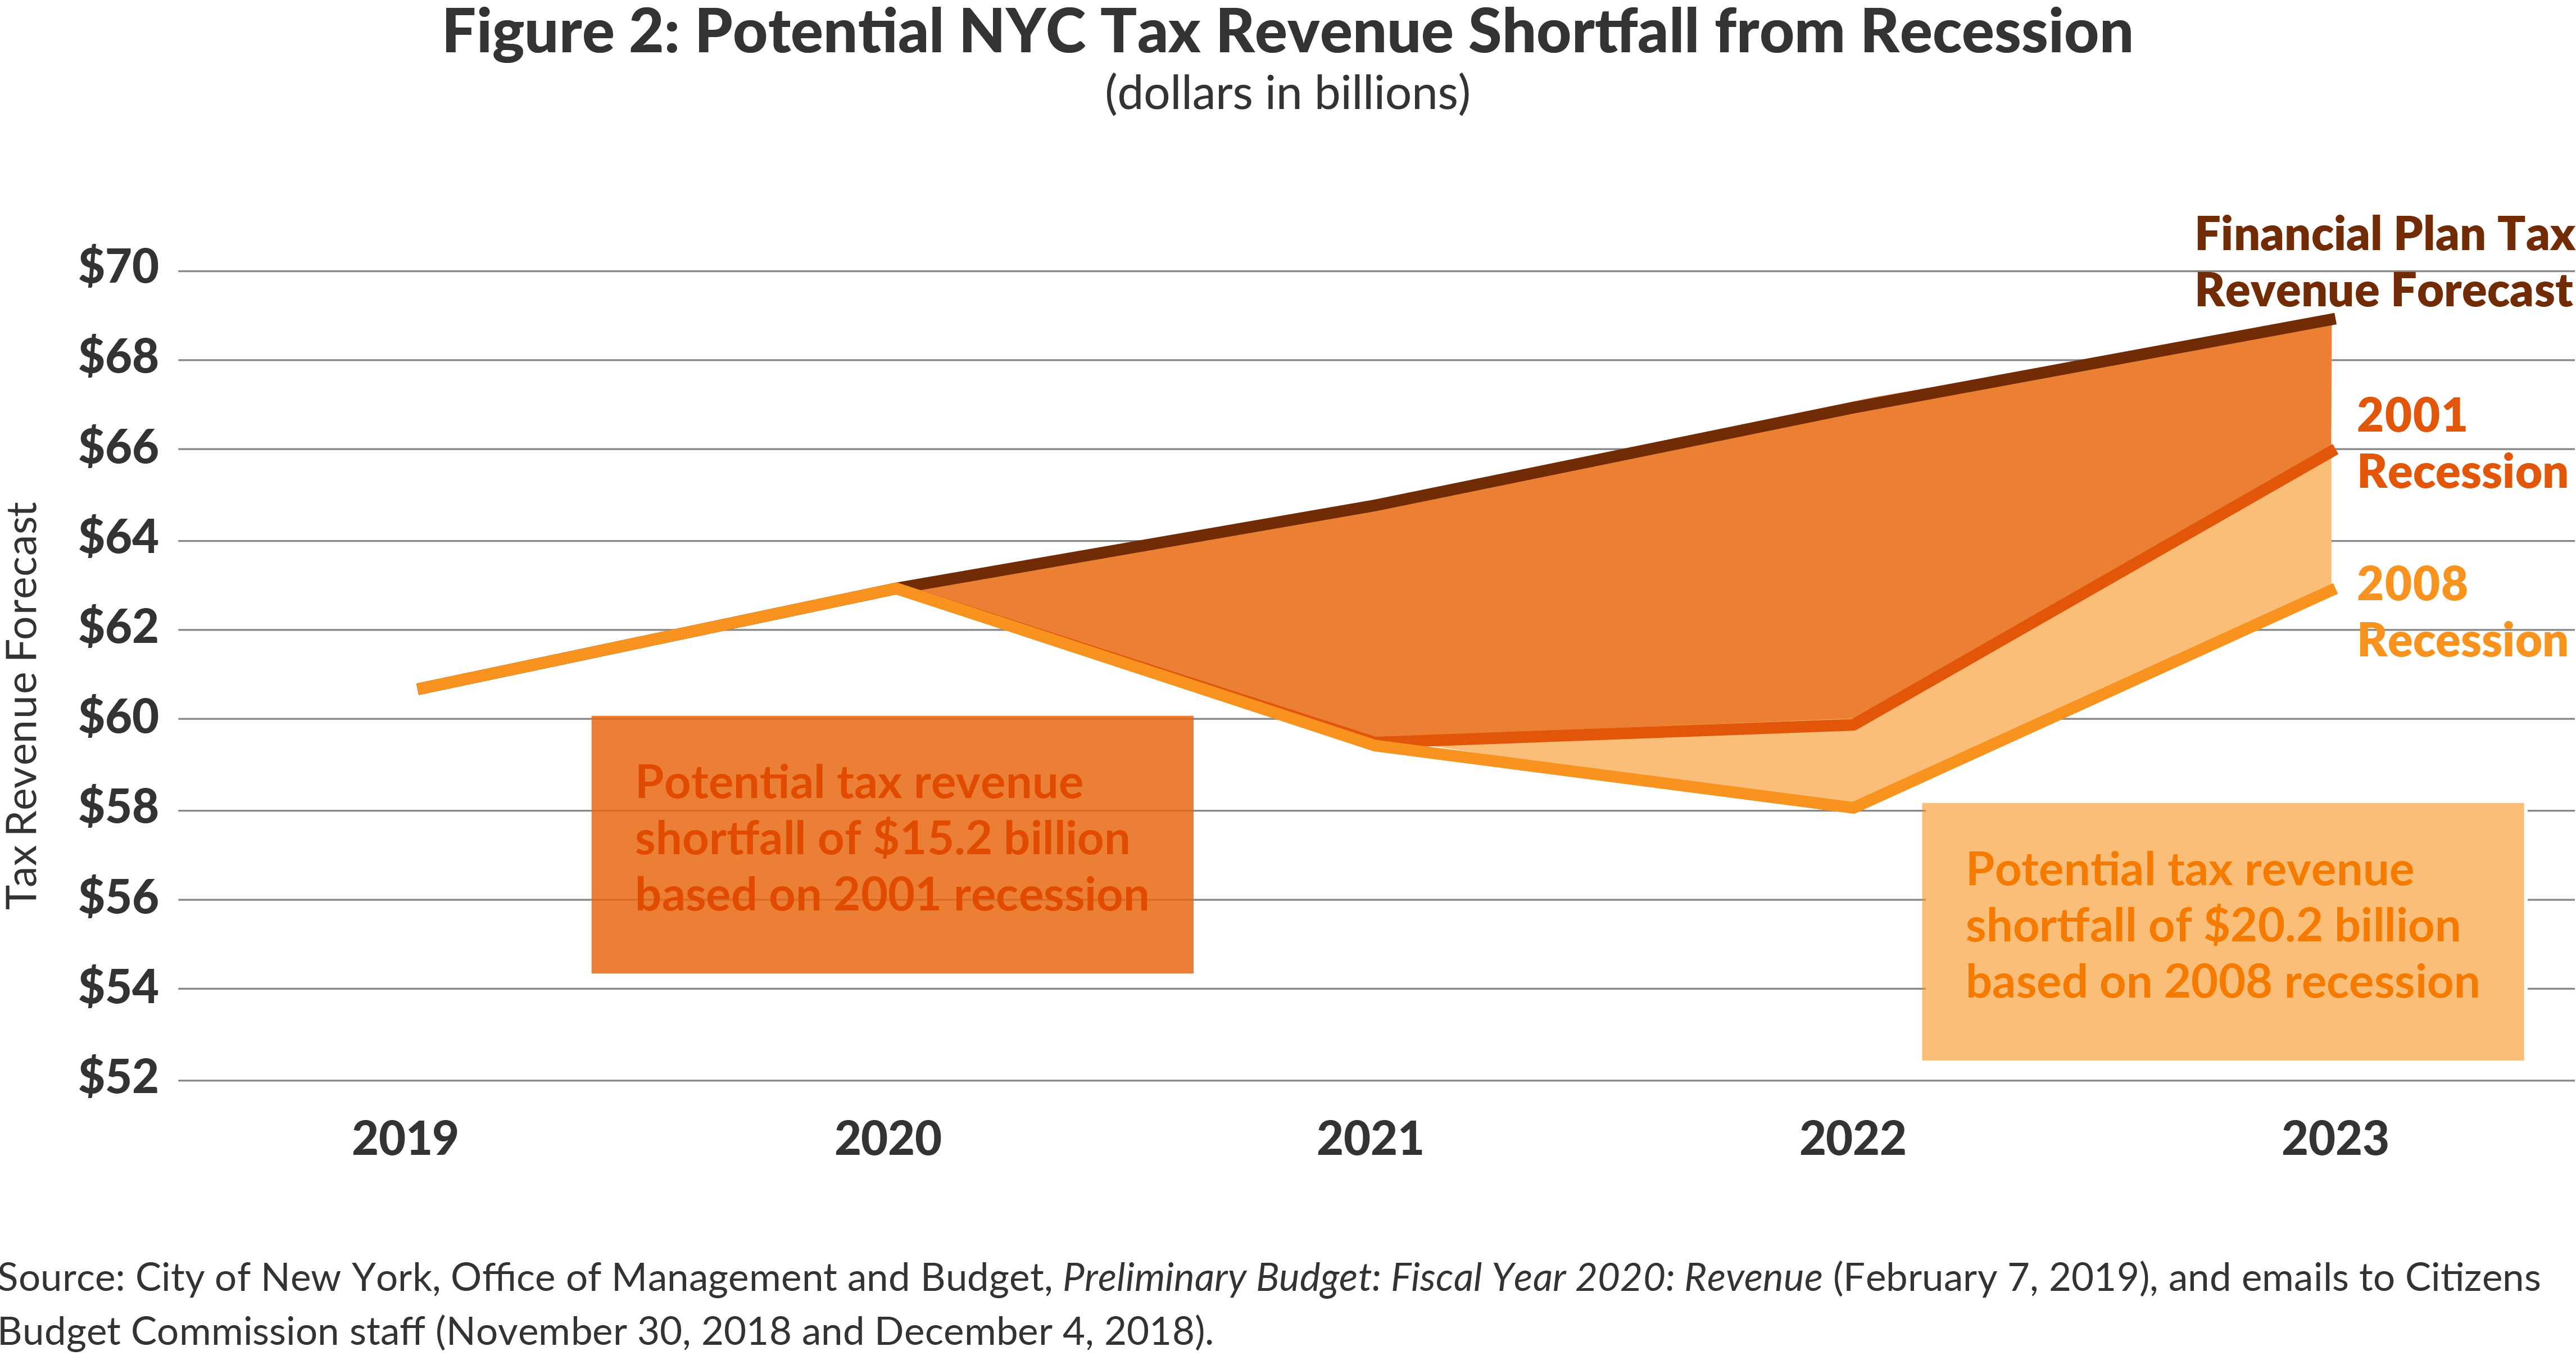 Figure 2: Potential NYC Tax Revenue Shortfall from Recession